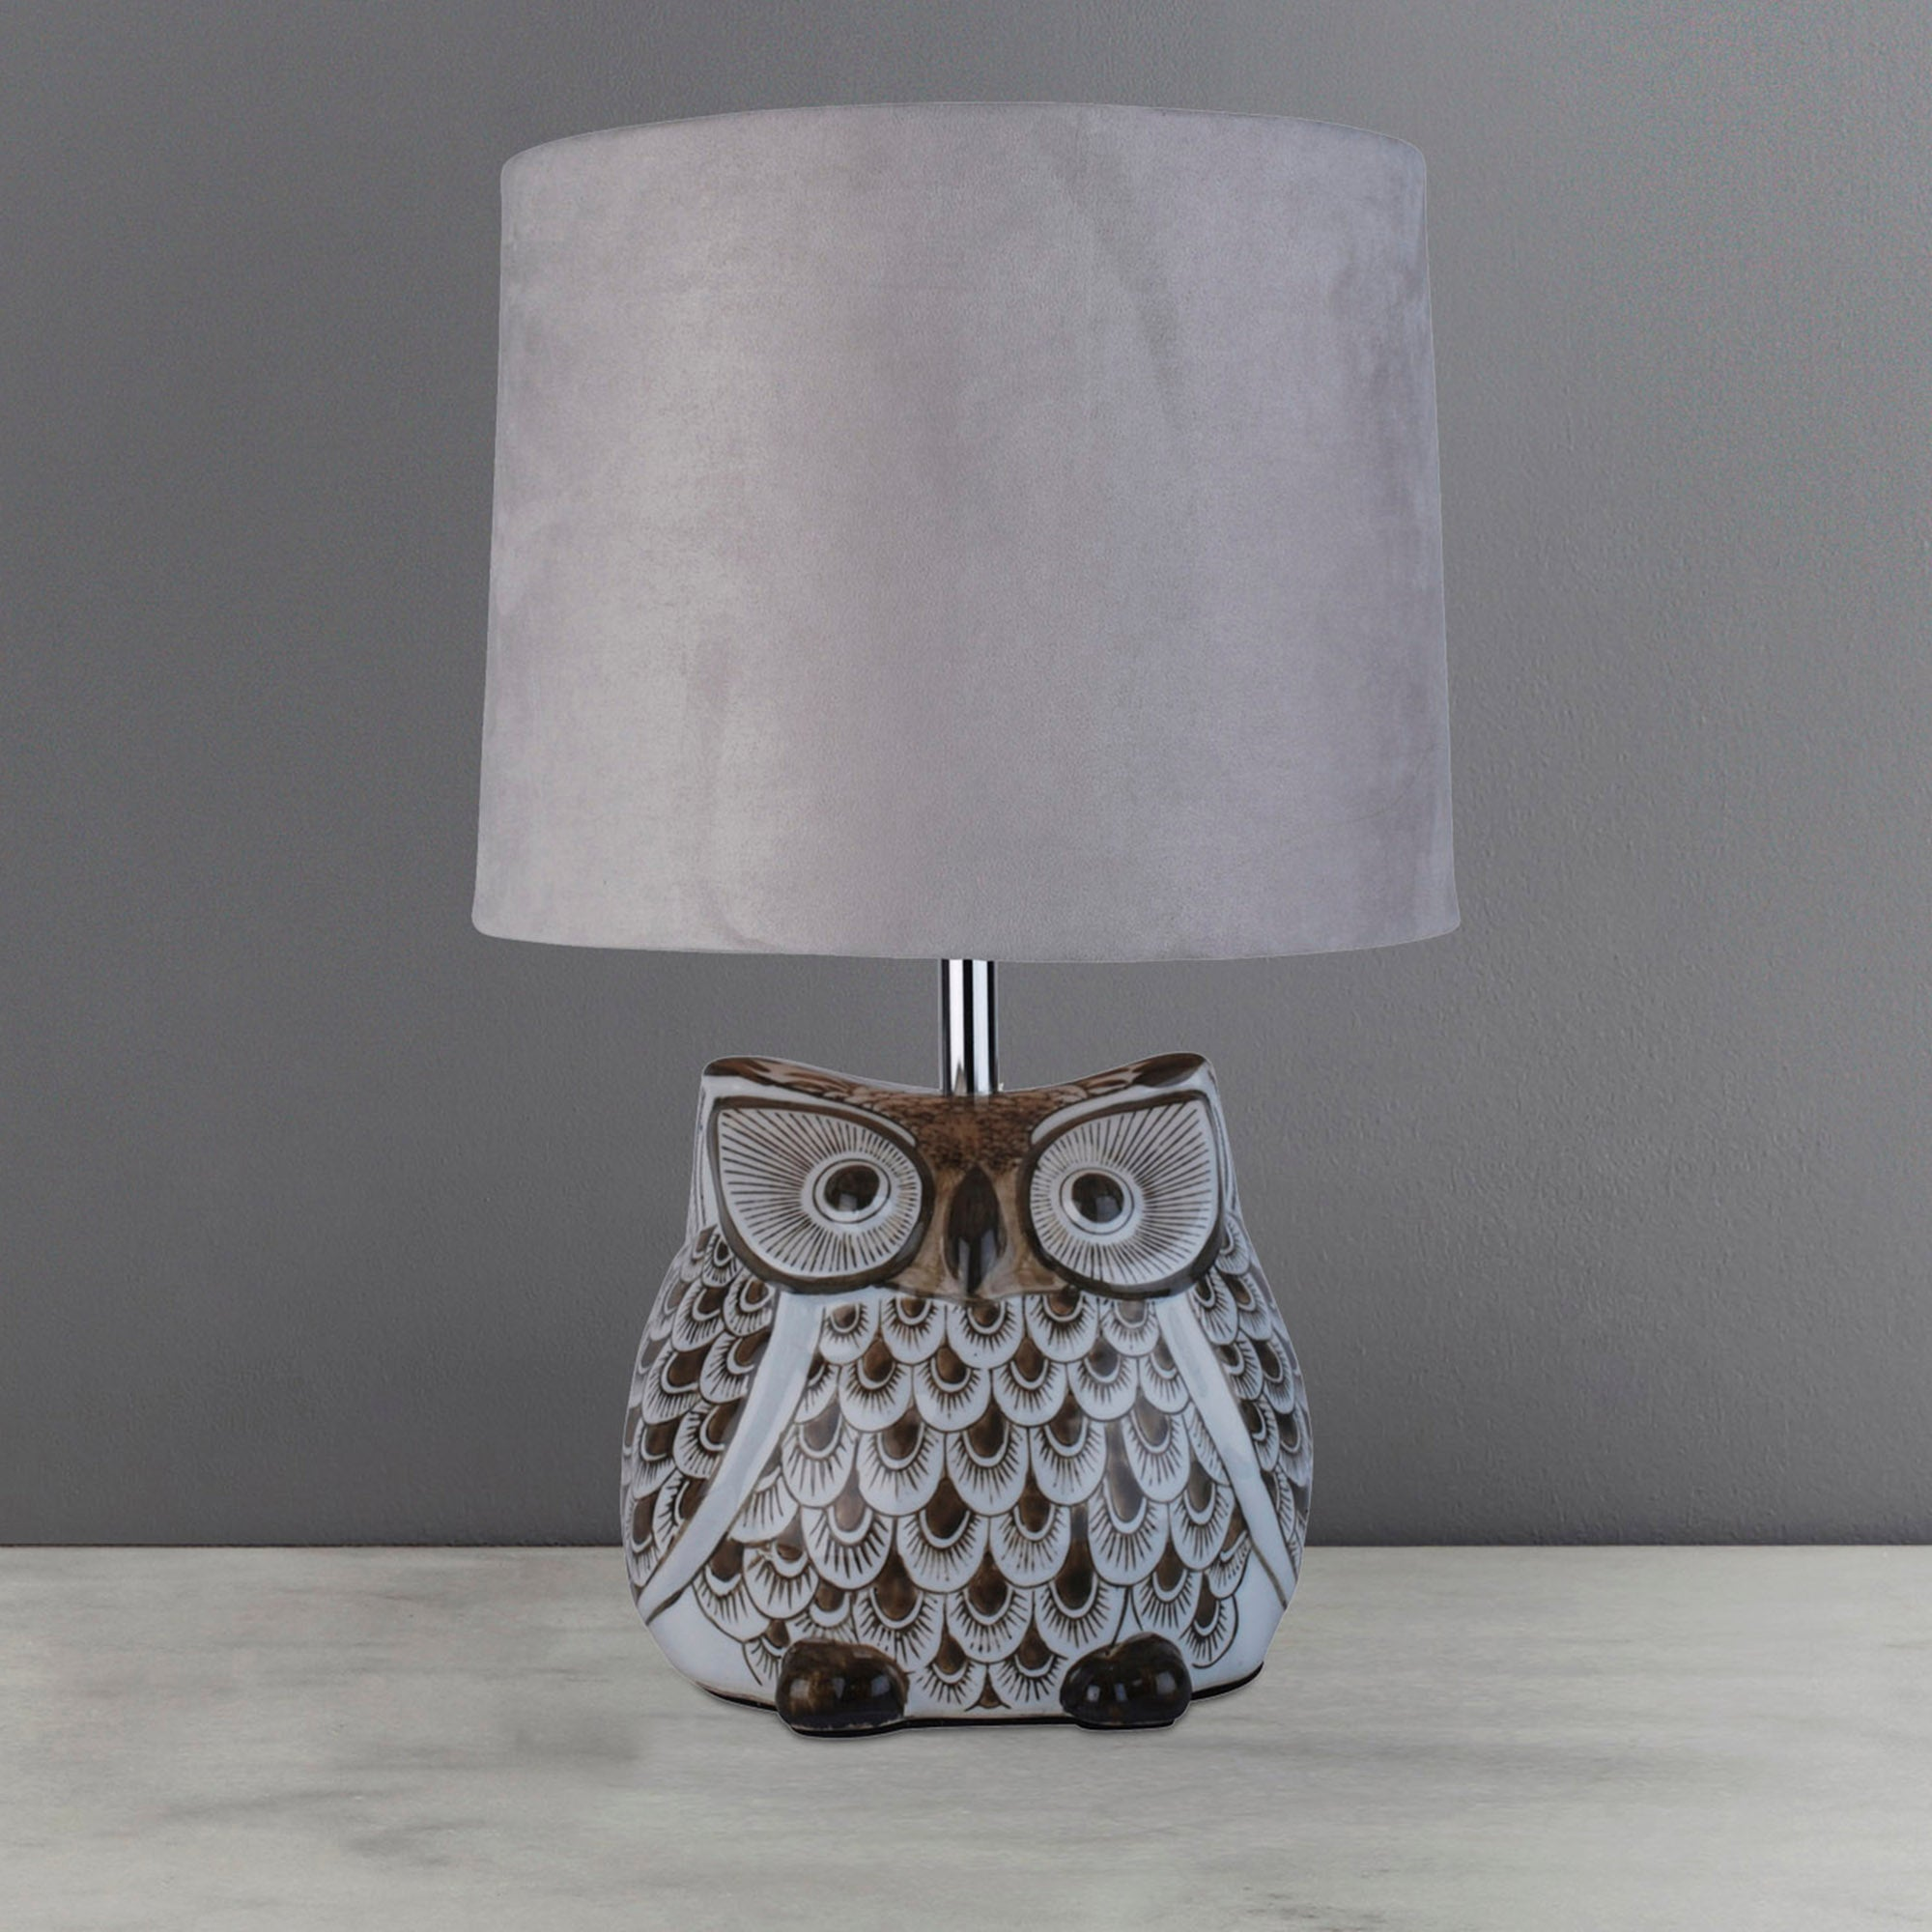 Photo of Hoot owl ceramic table lamp natural